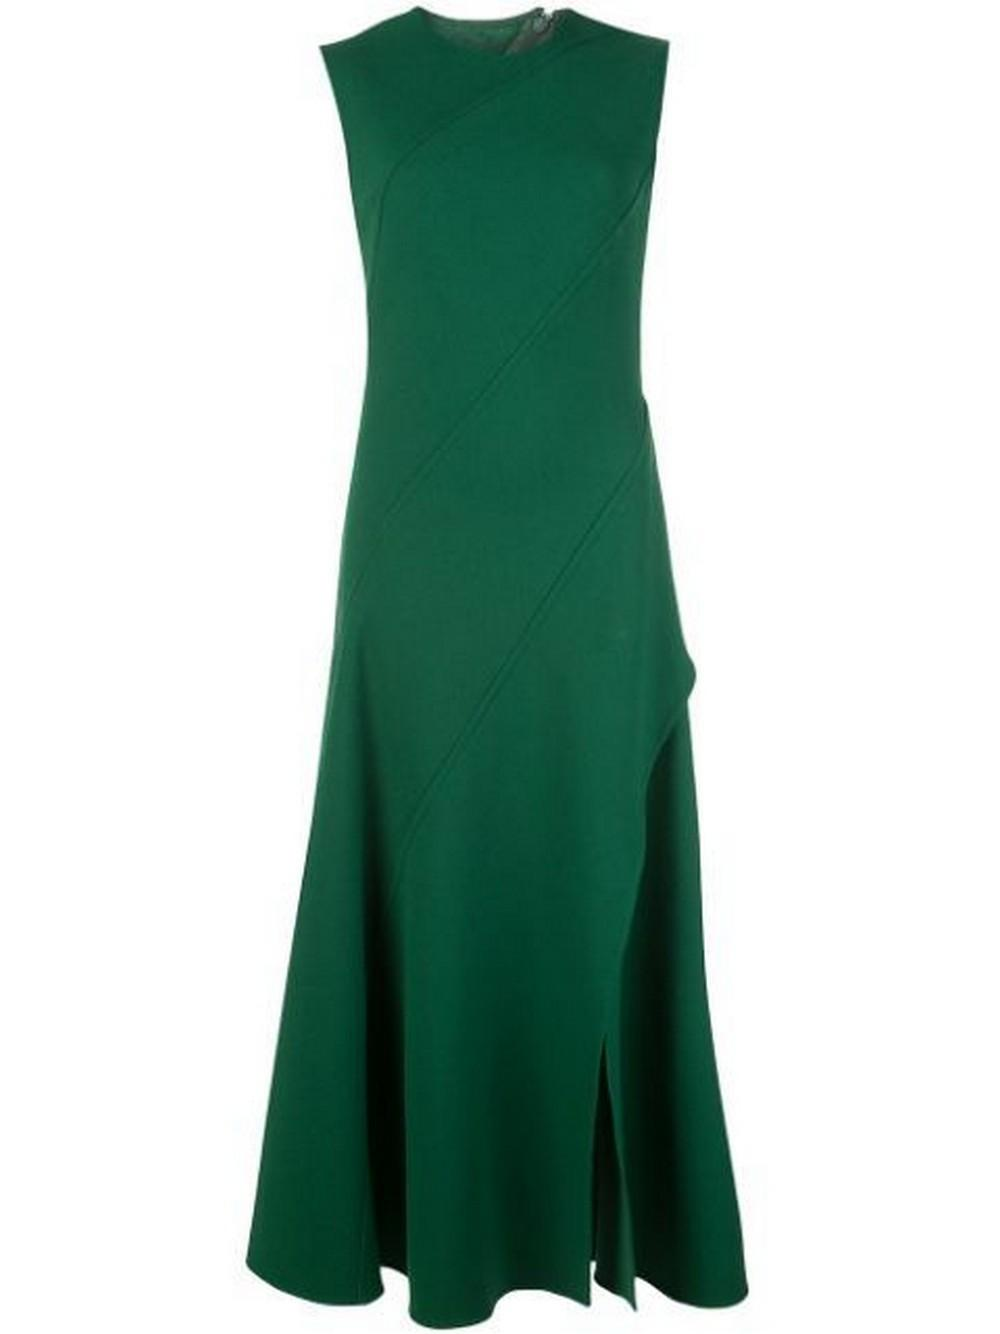 Sleeveless Day Dress With Side Slit Item # 20PN274STW